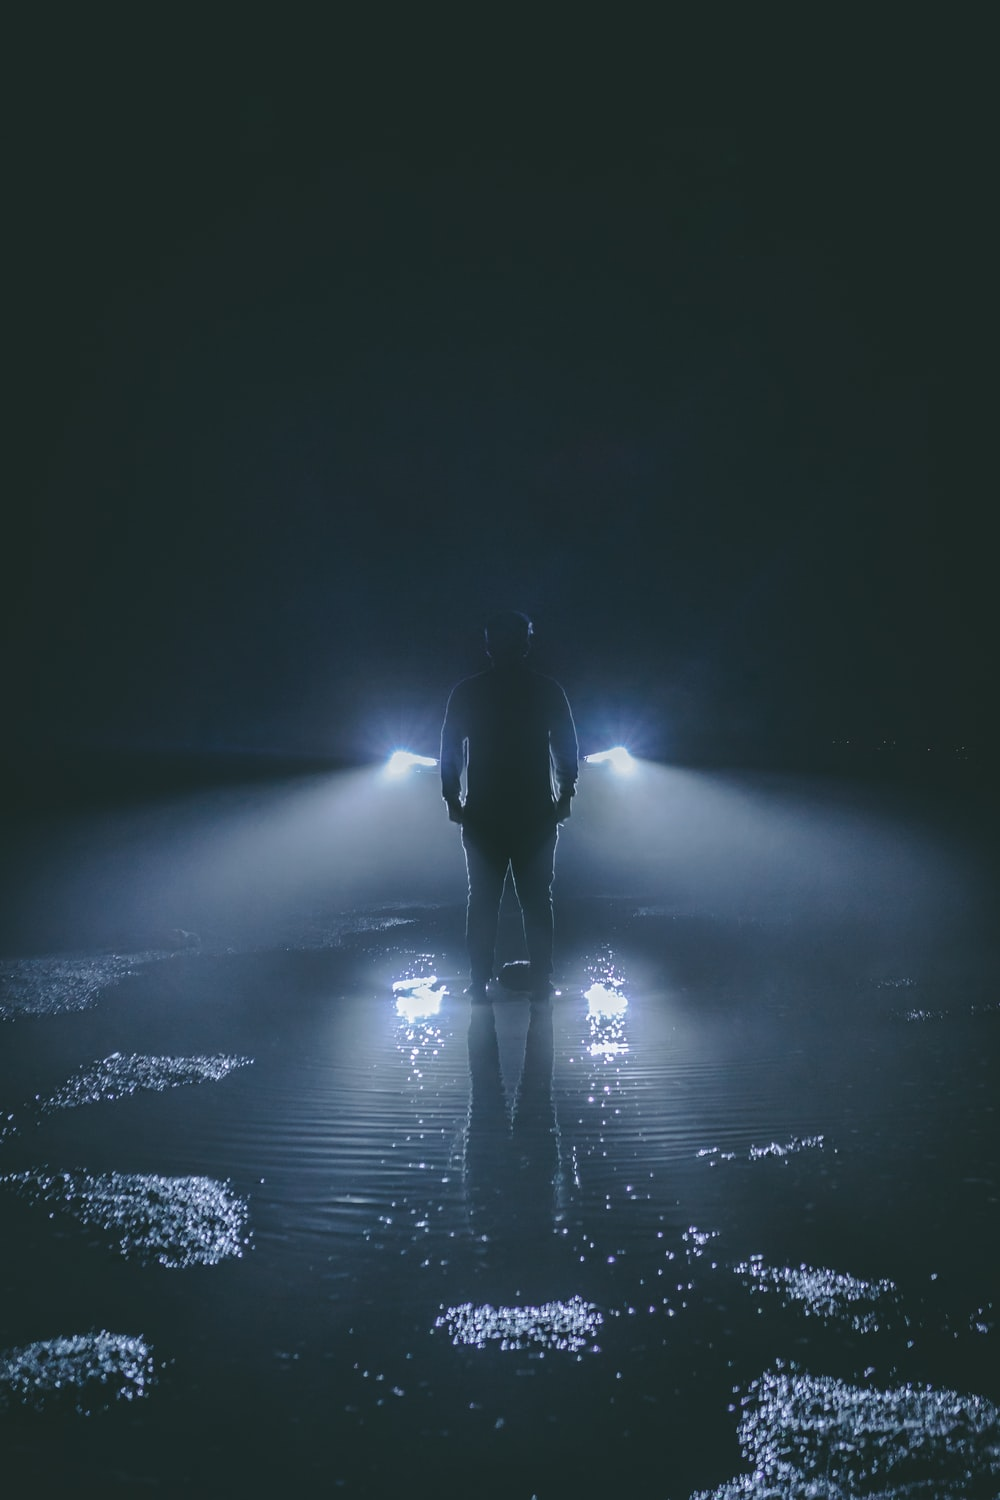 silhouette of person standing near car